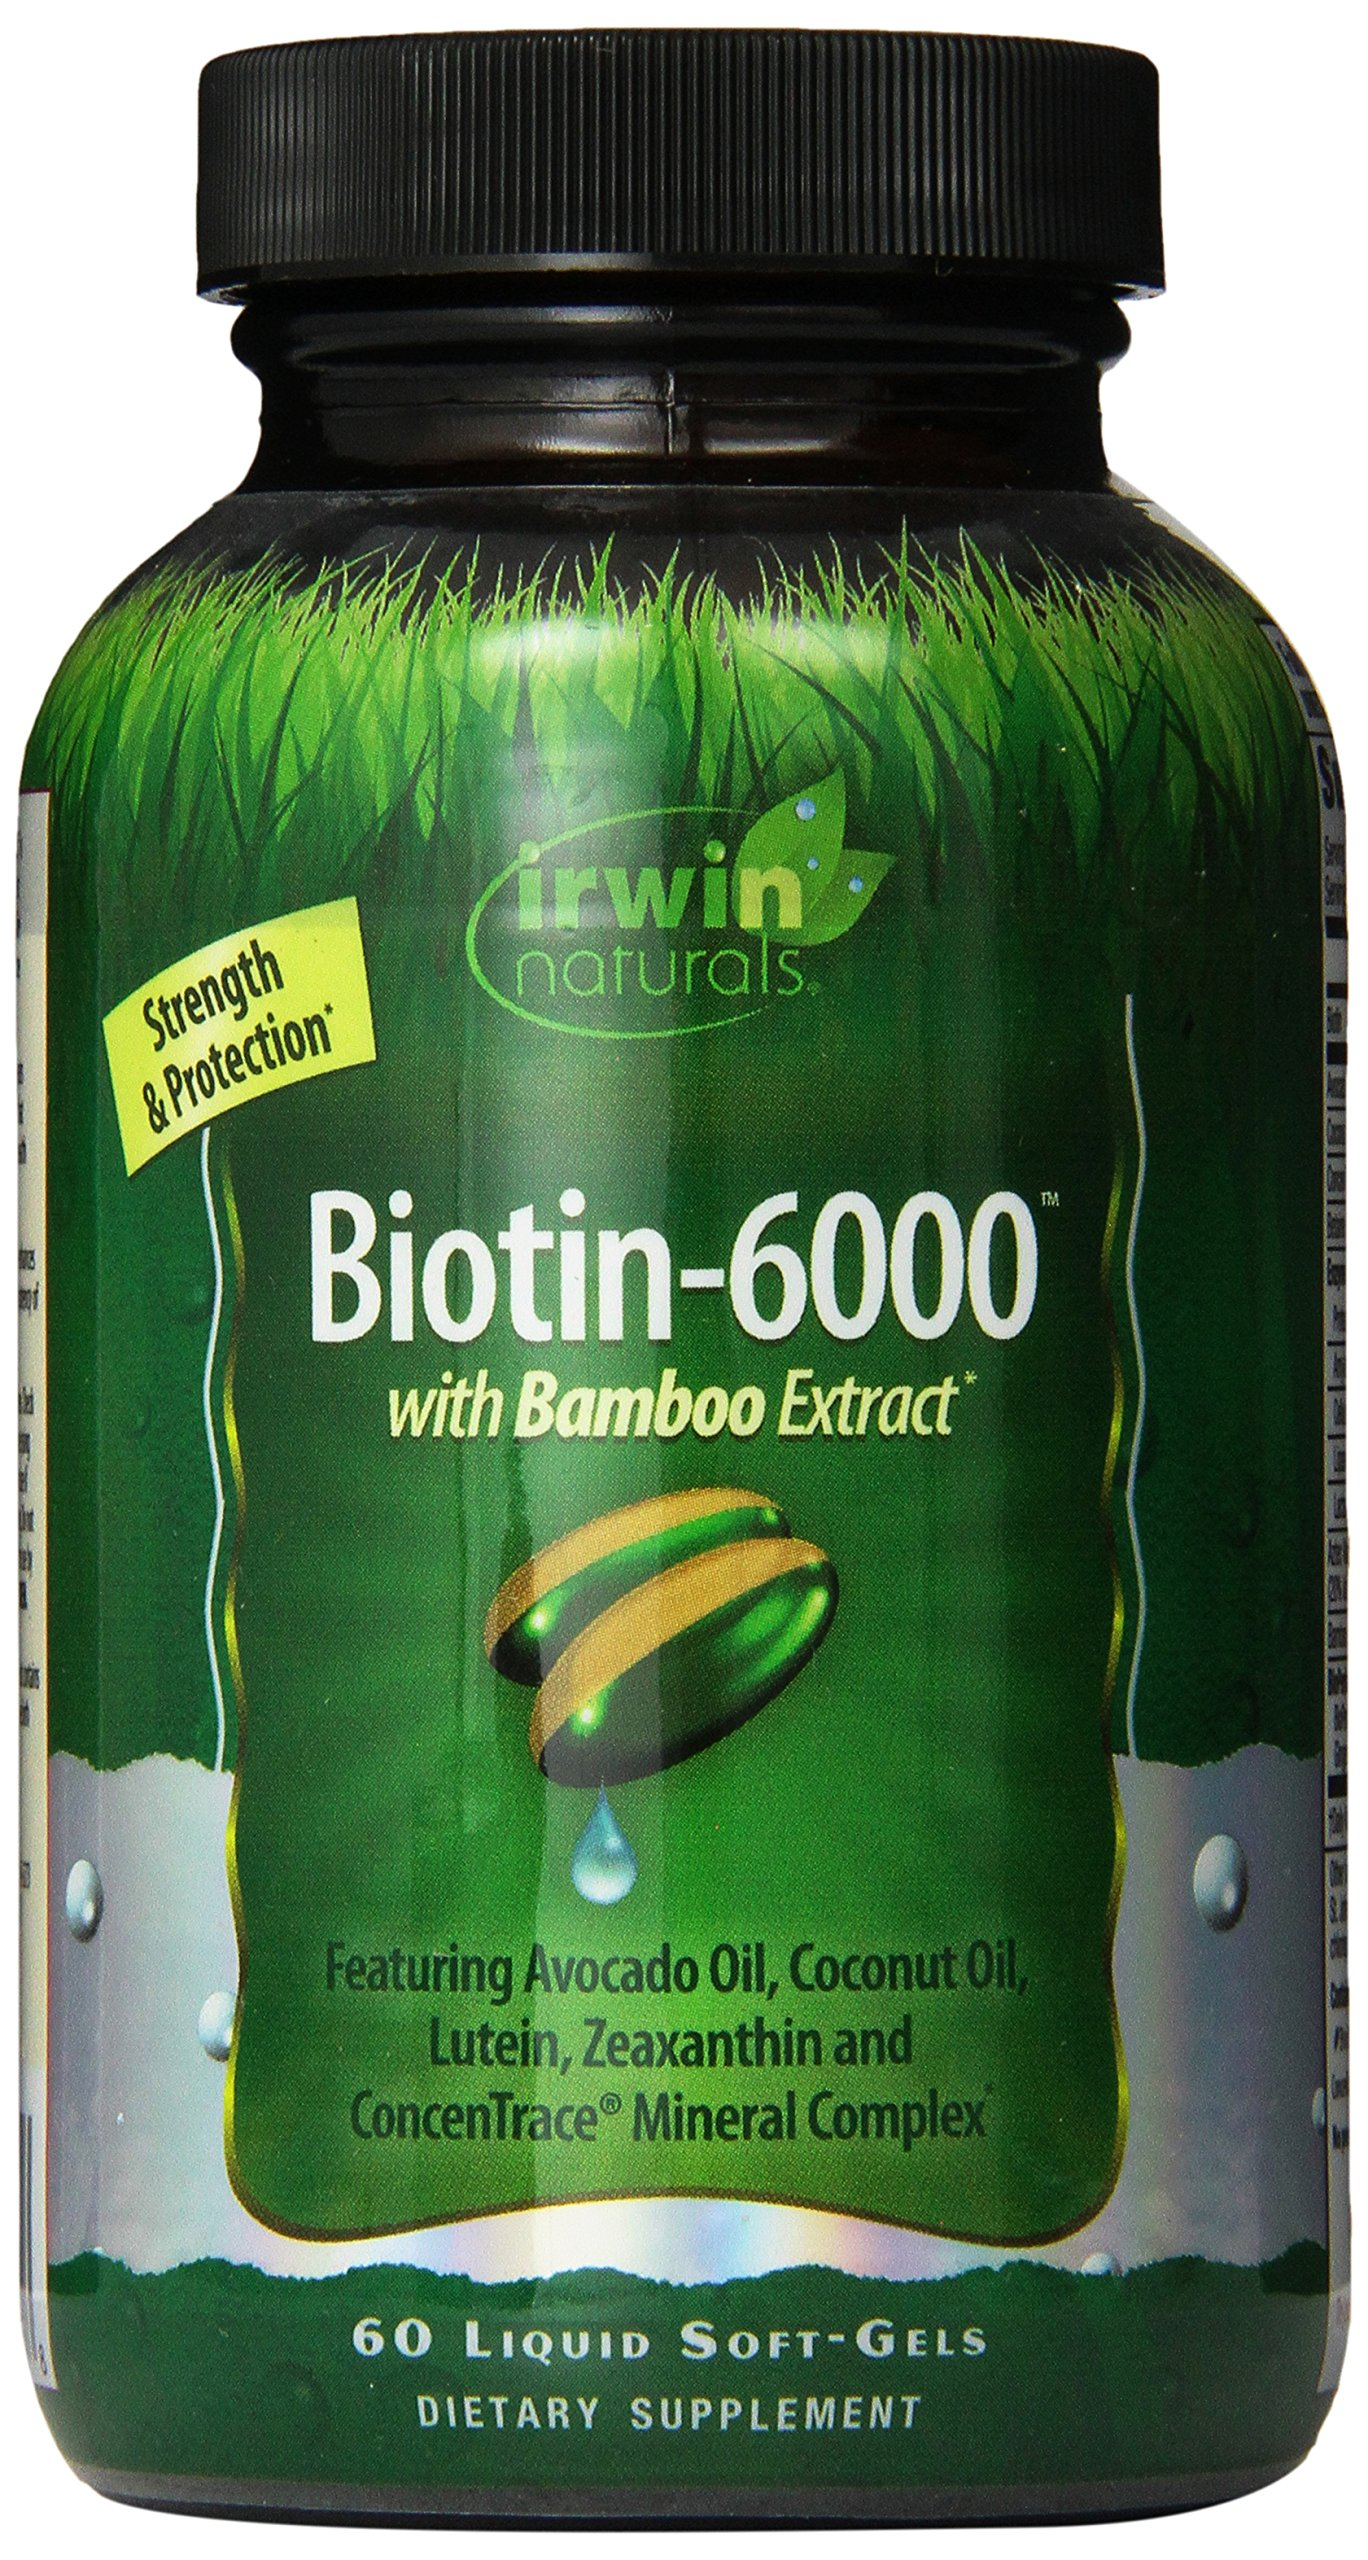 Biotin-6000 Hair & Nails by Irwin Naturals, with Bamboo Extract for Strength & Protection, 60 Liquid Soft-Gels